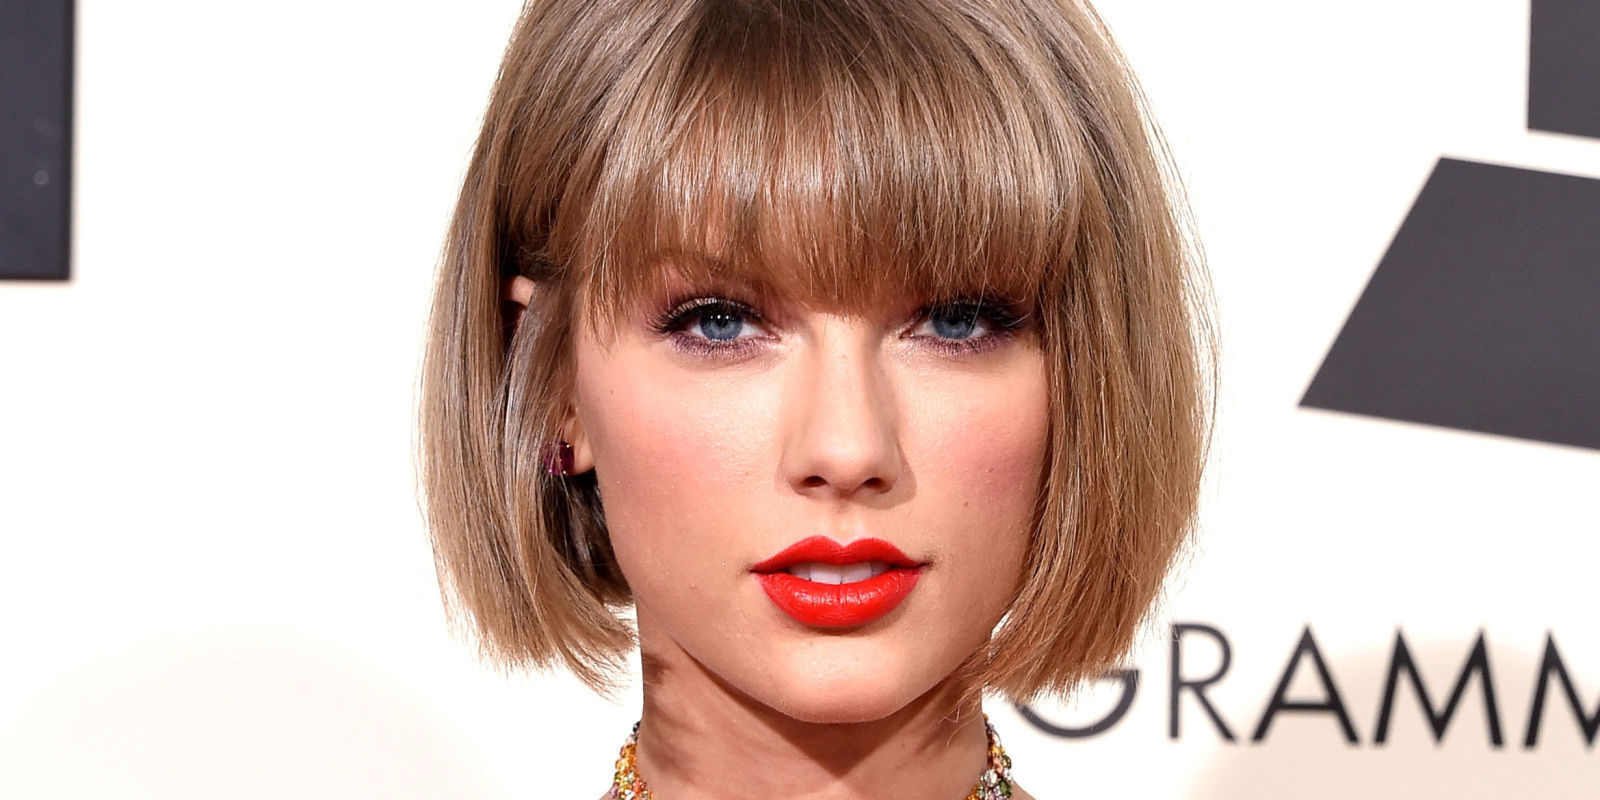 Short Hairstyles: 30 Bangs Hairstyles For Short Hair